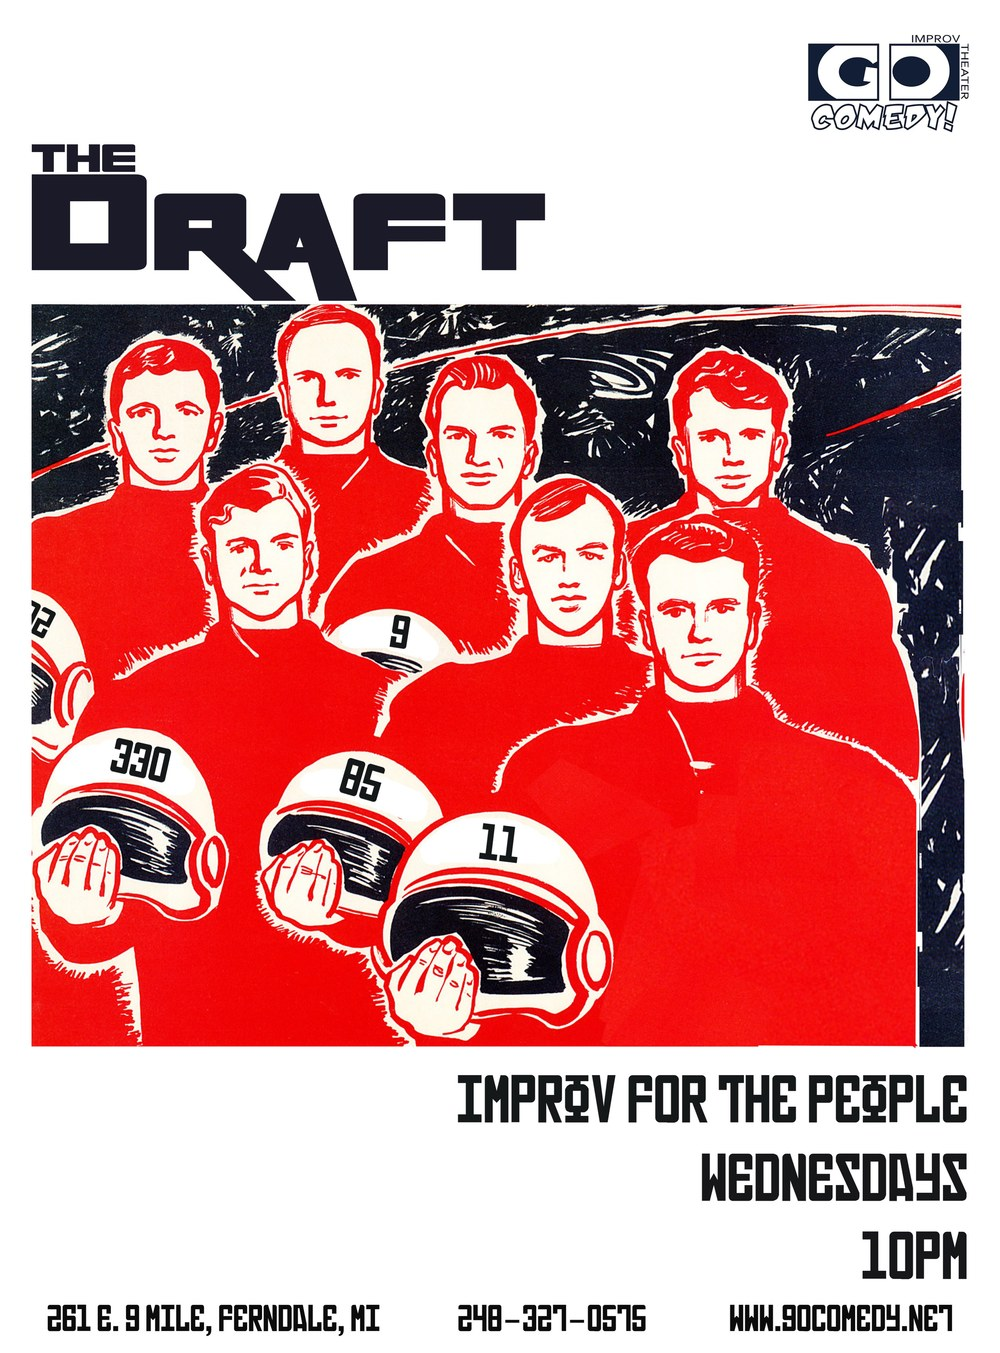 Wednesdays 10pm April 23rd & 29th Improvisers are randomly drafted into threeteams, which will compete in a head to head improv battle. The best team wins! Come out and support your troupes!